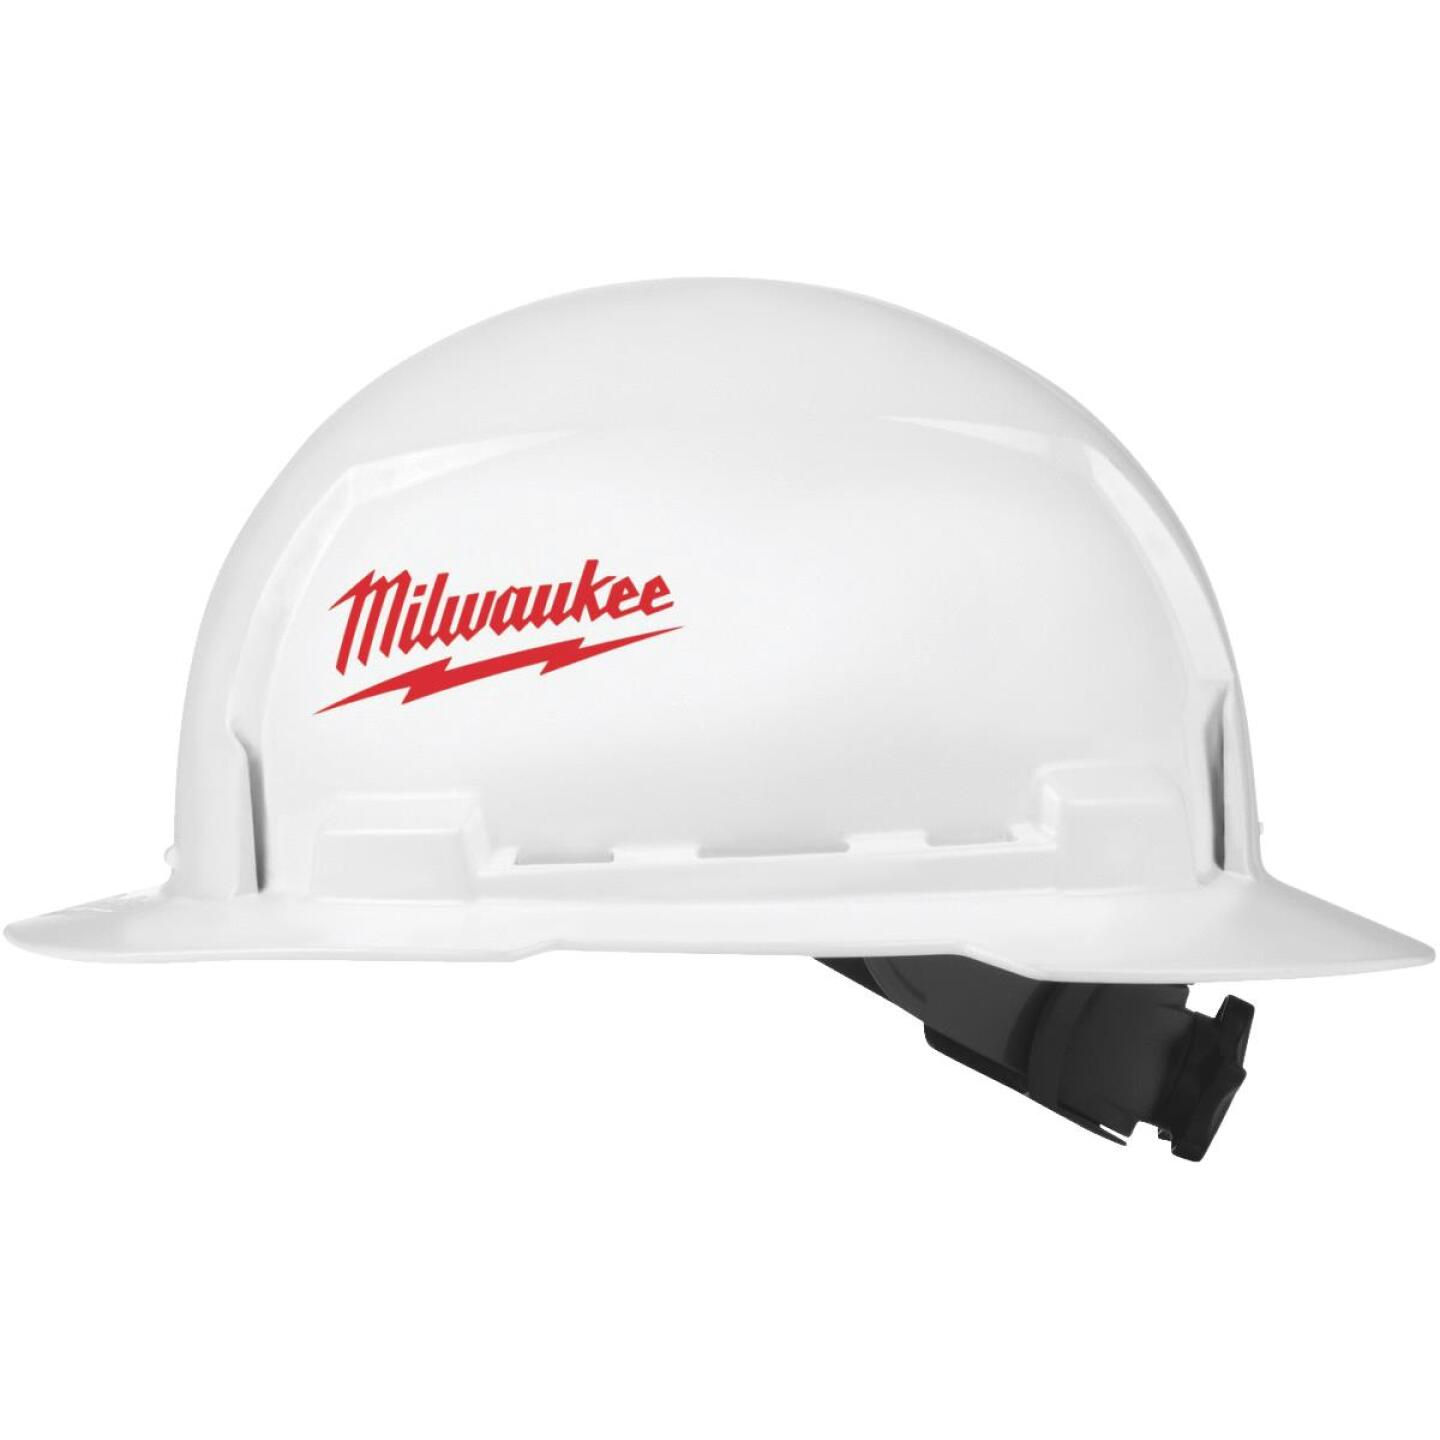 Milwaukee White & Red Full Brim Ratcheting Type 1 Class E Hard Hat Image 1